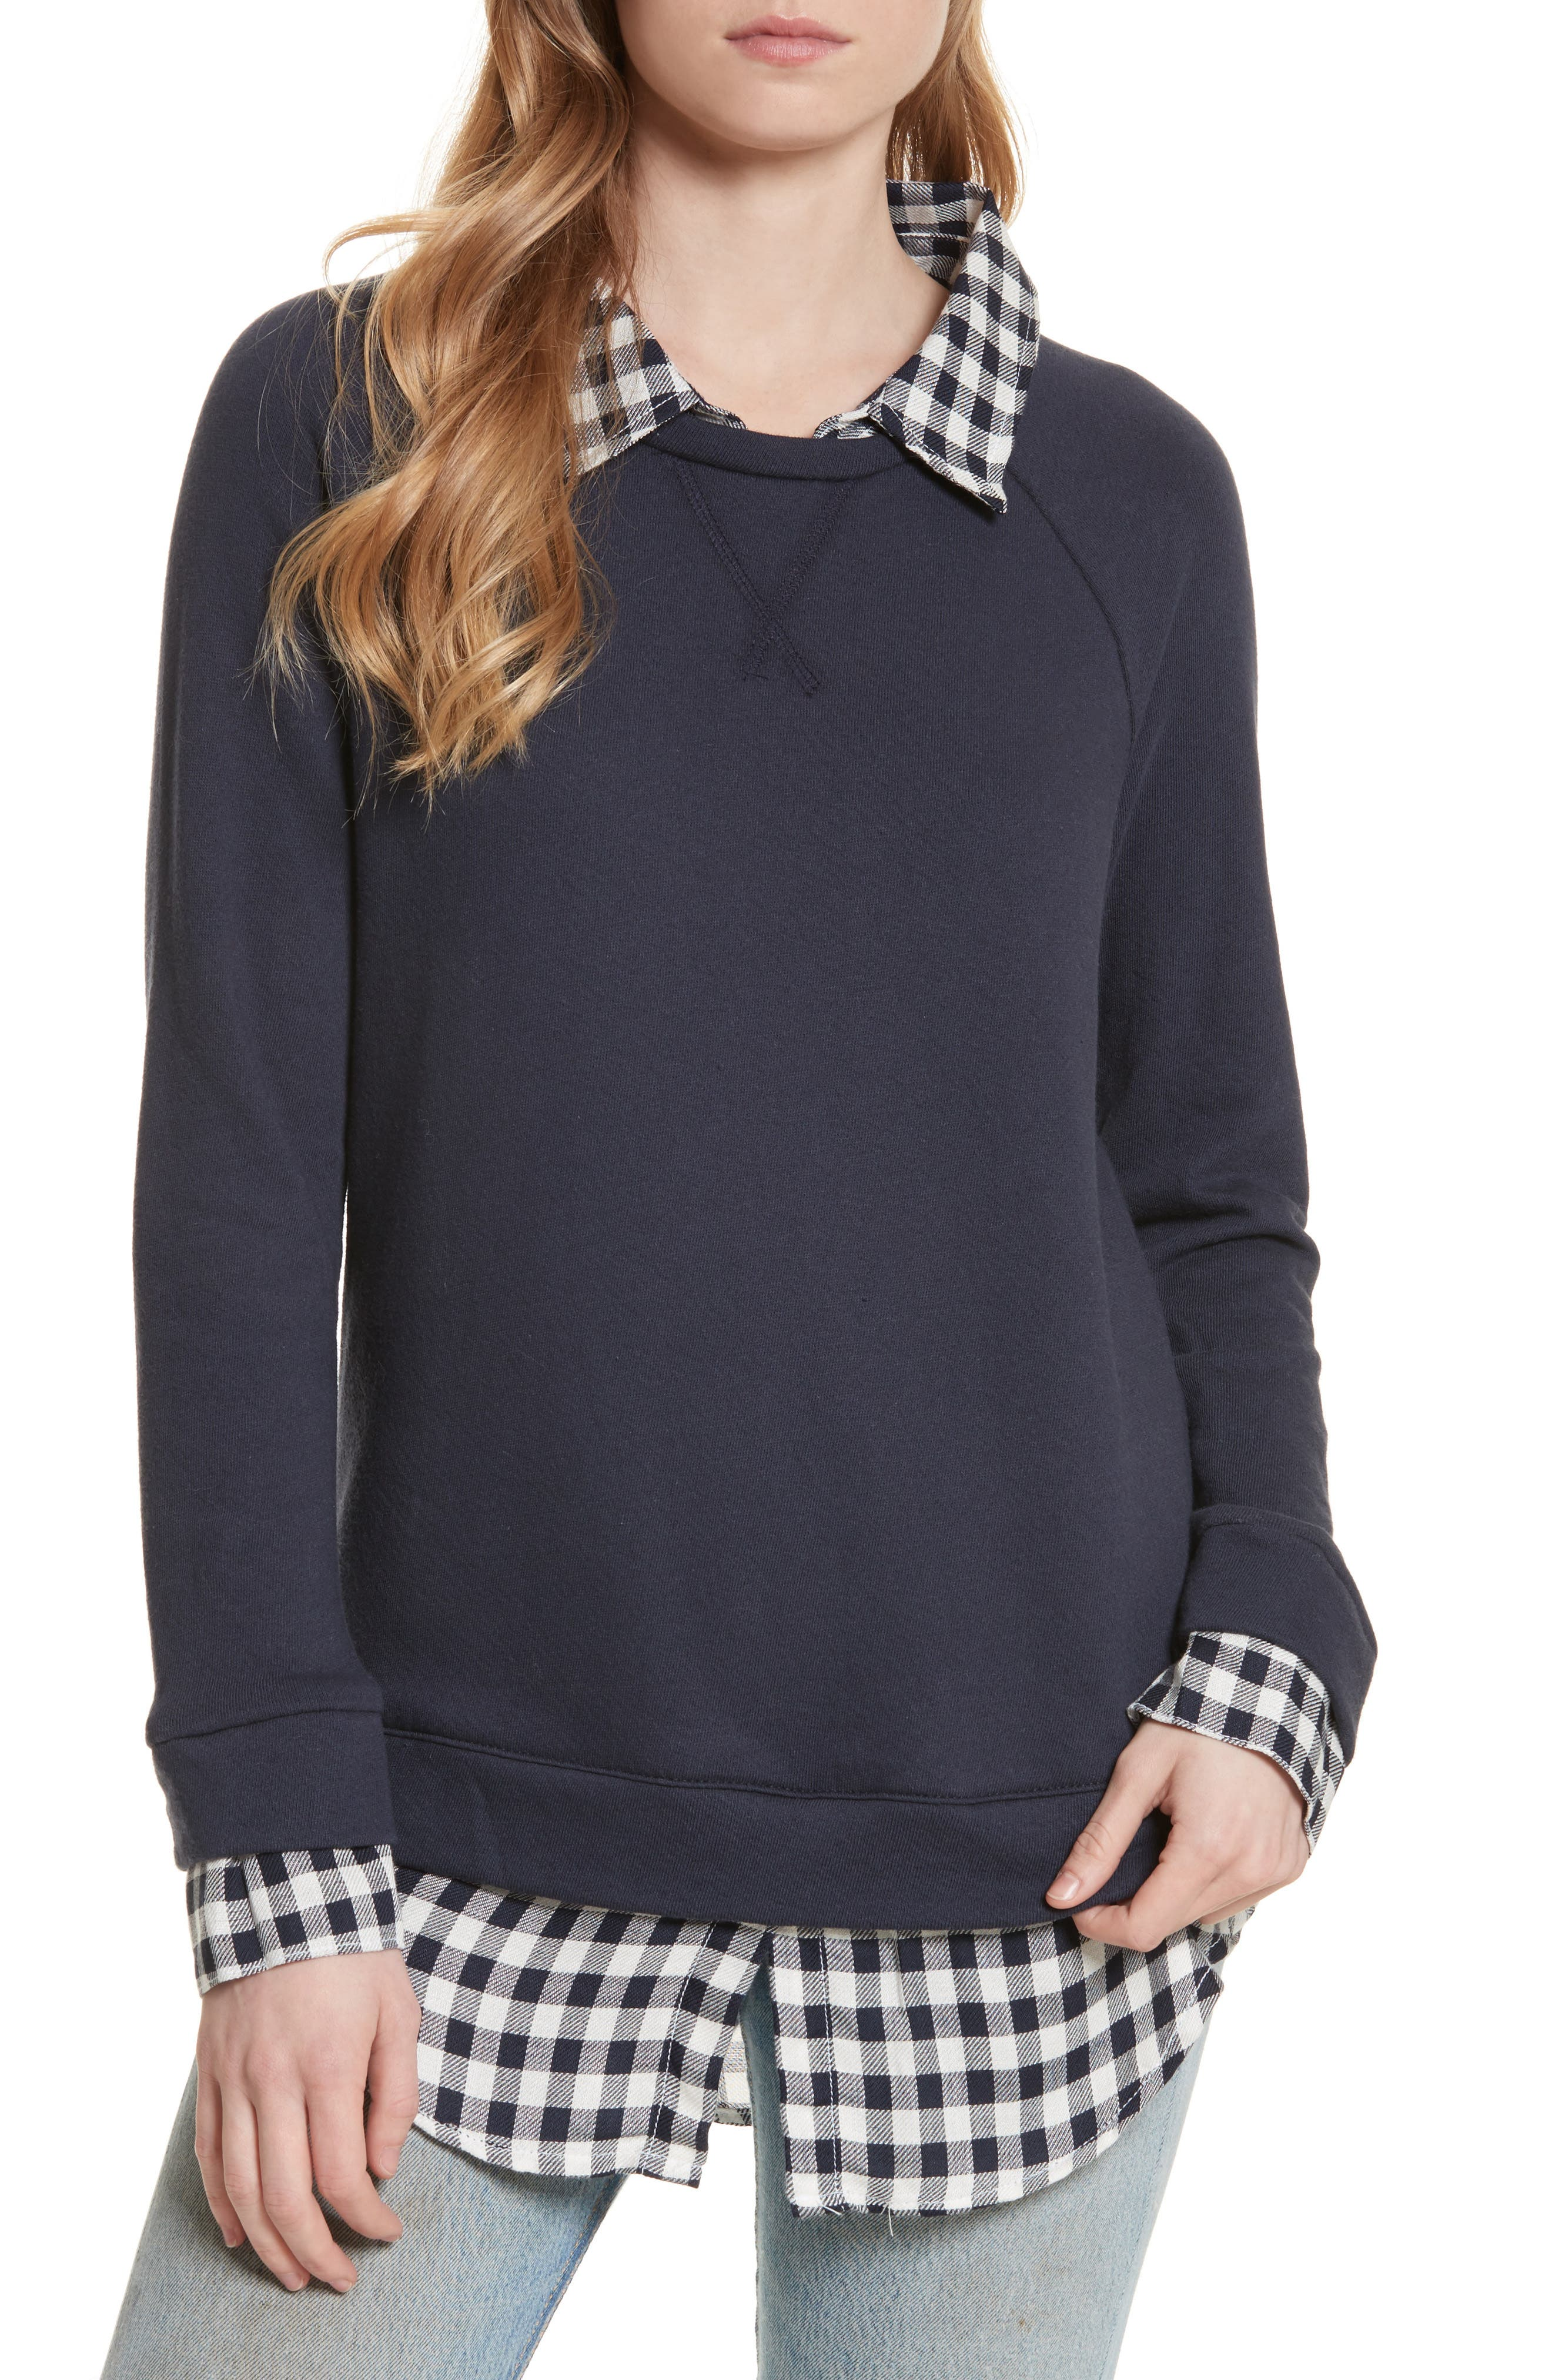 Soft Joie Diadem Pullover